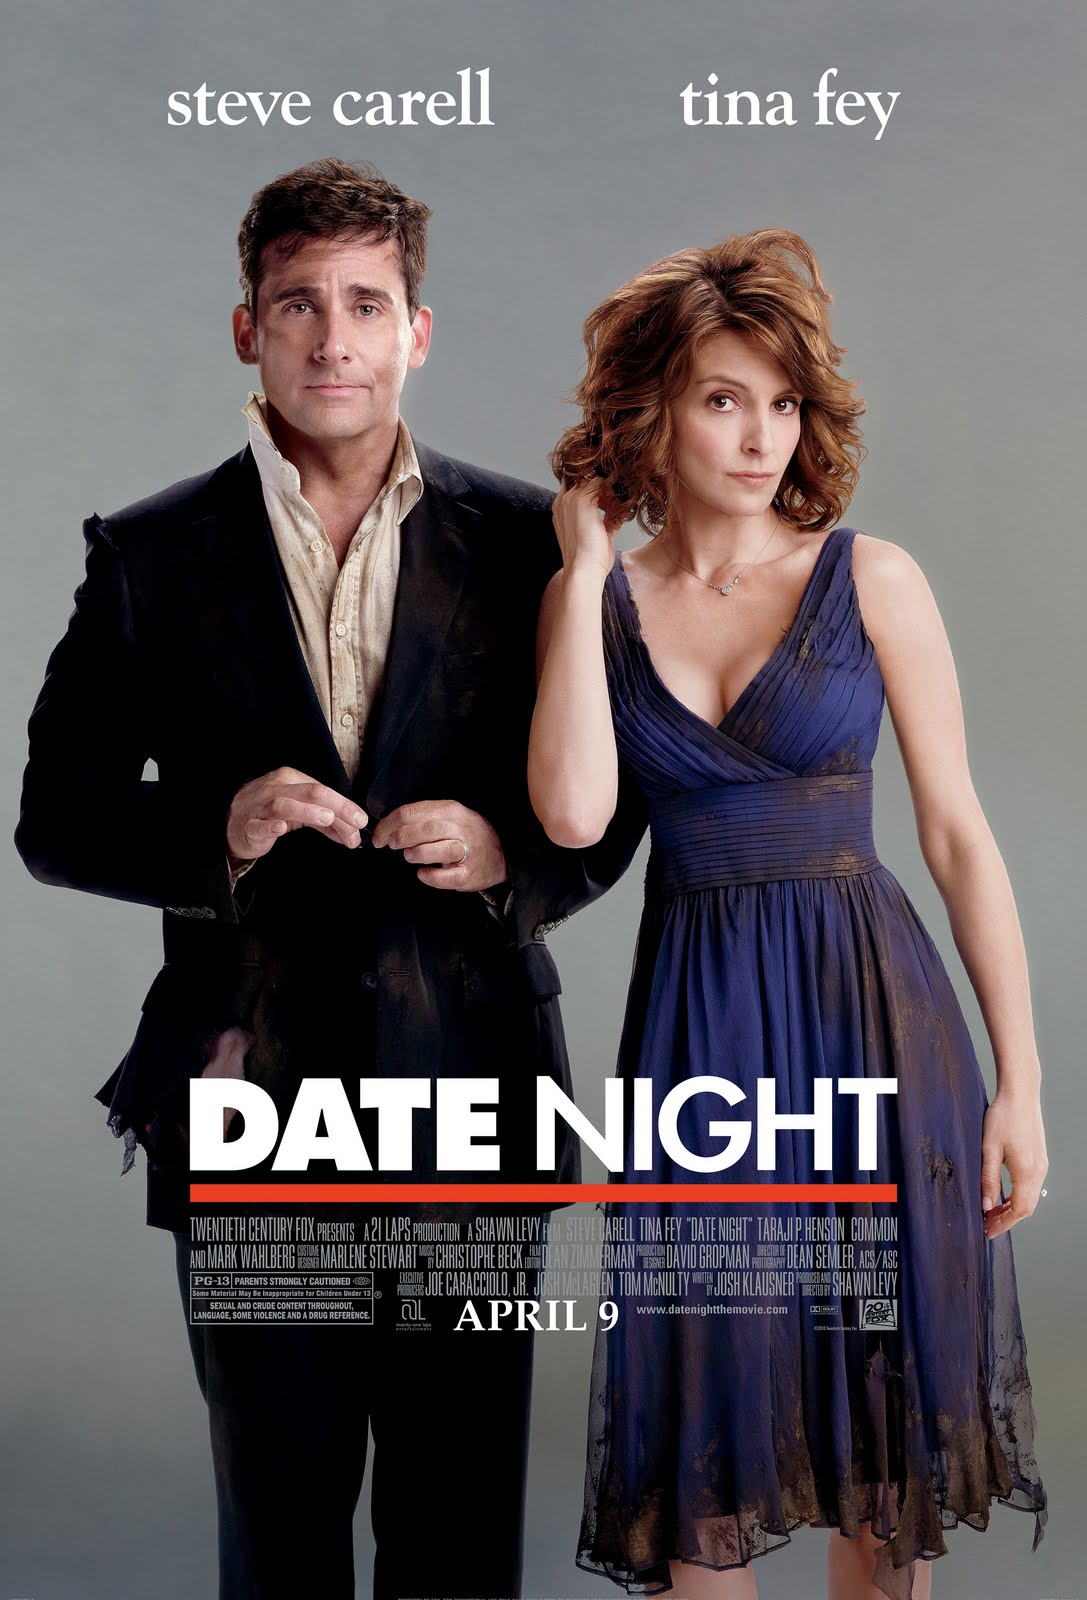 In Date Night, Steve Carell